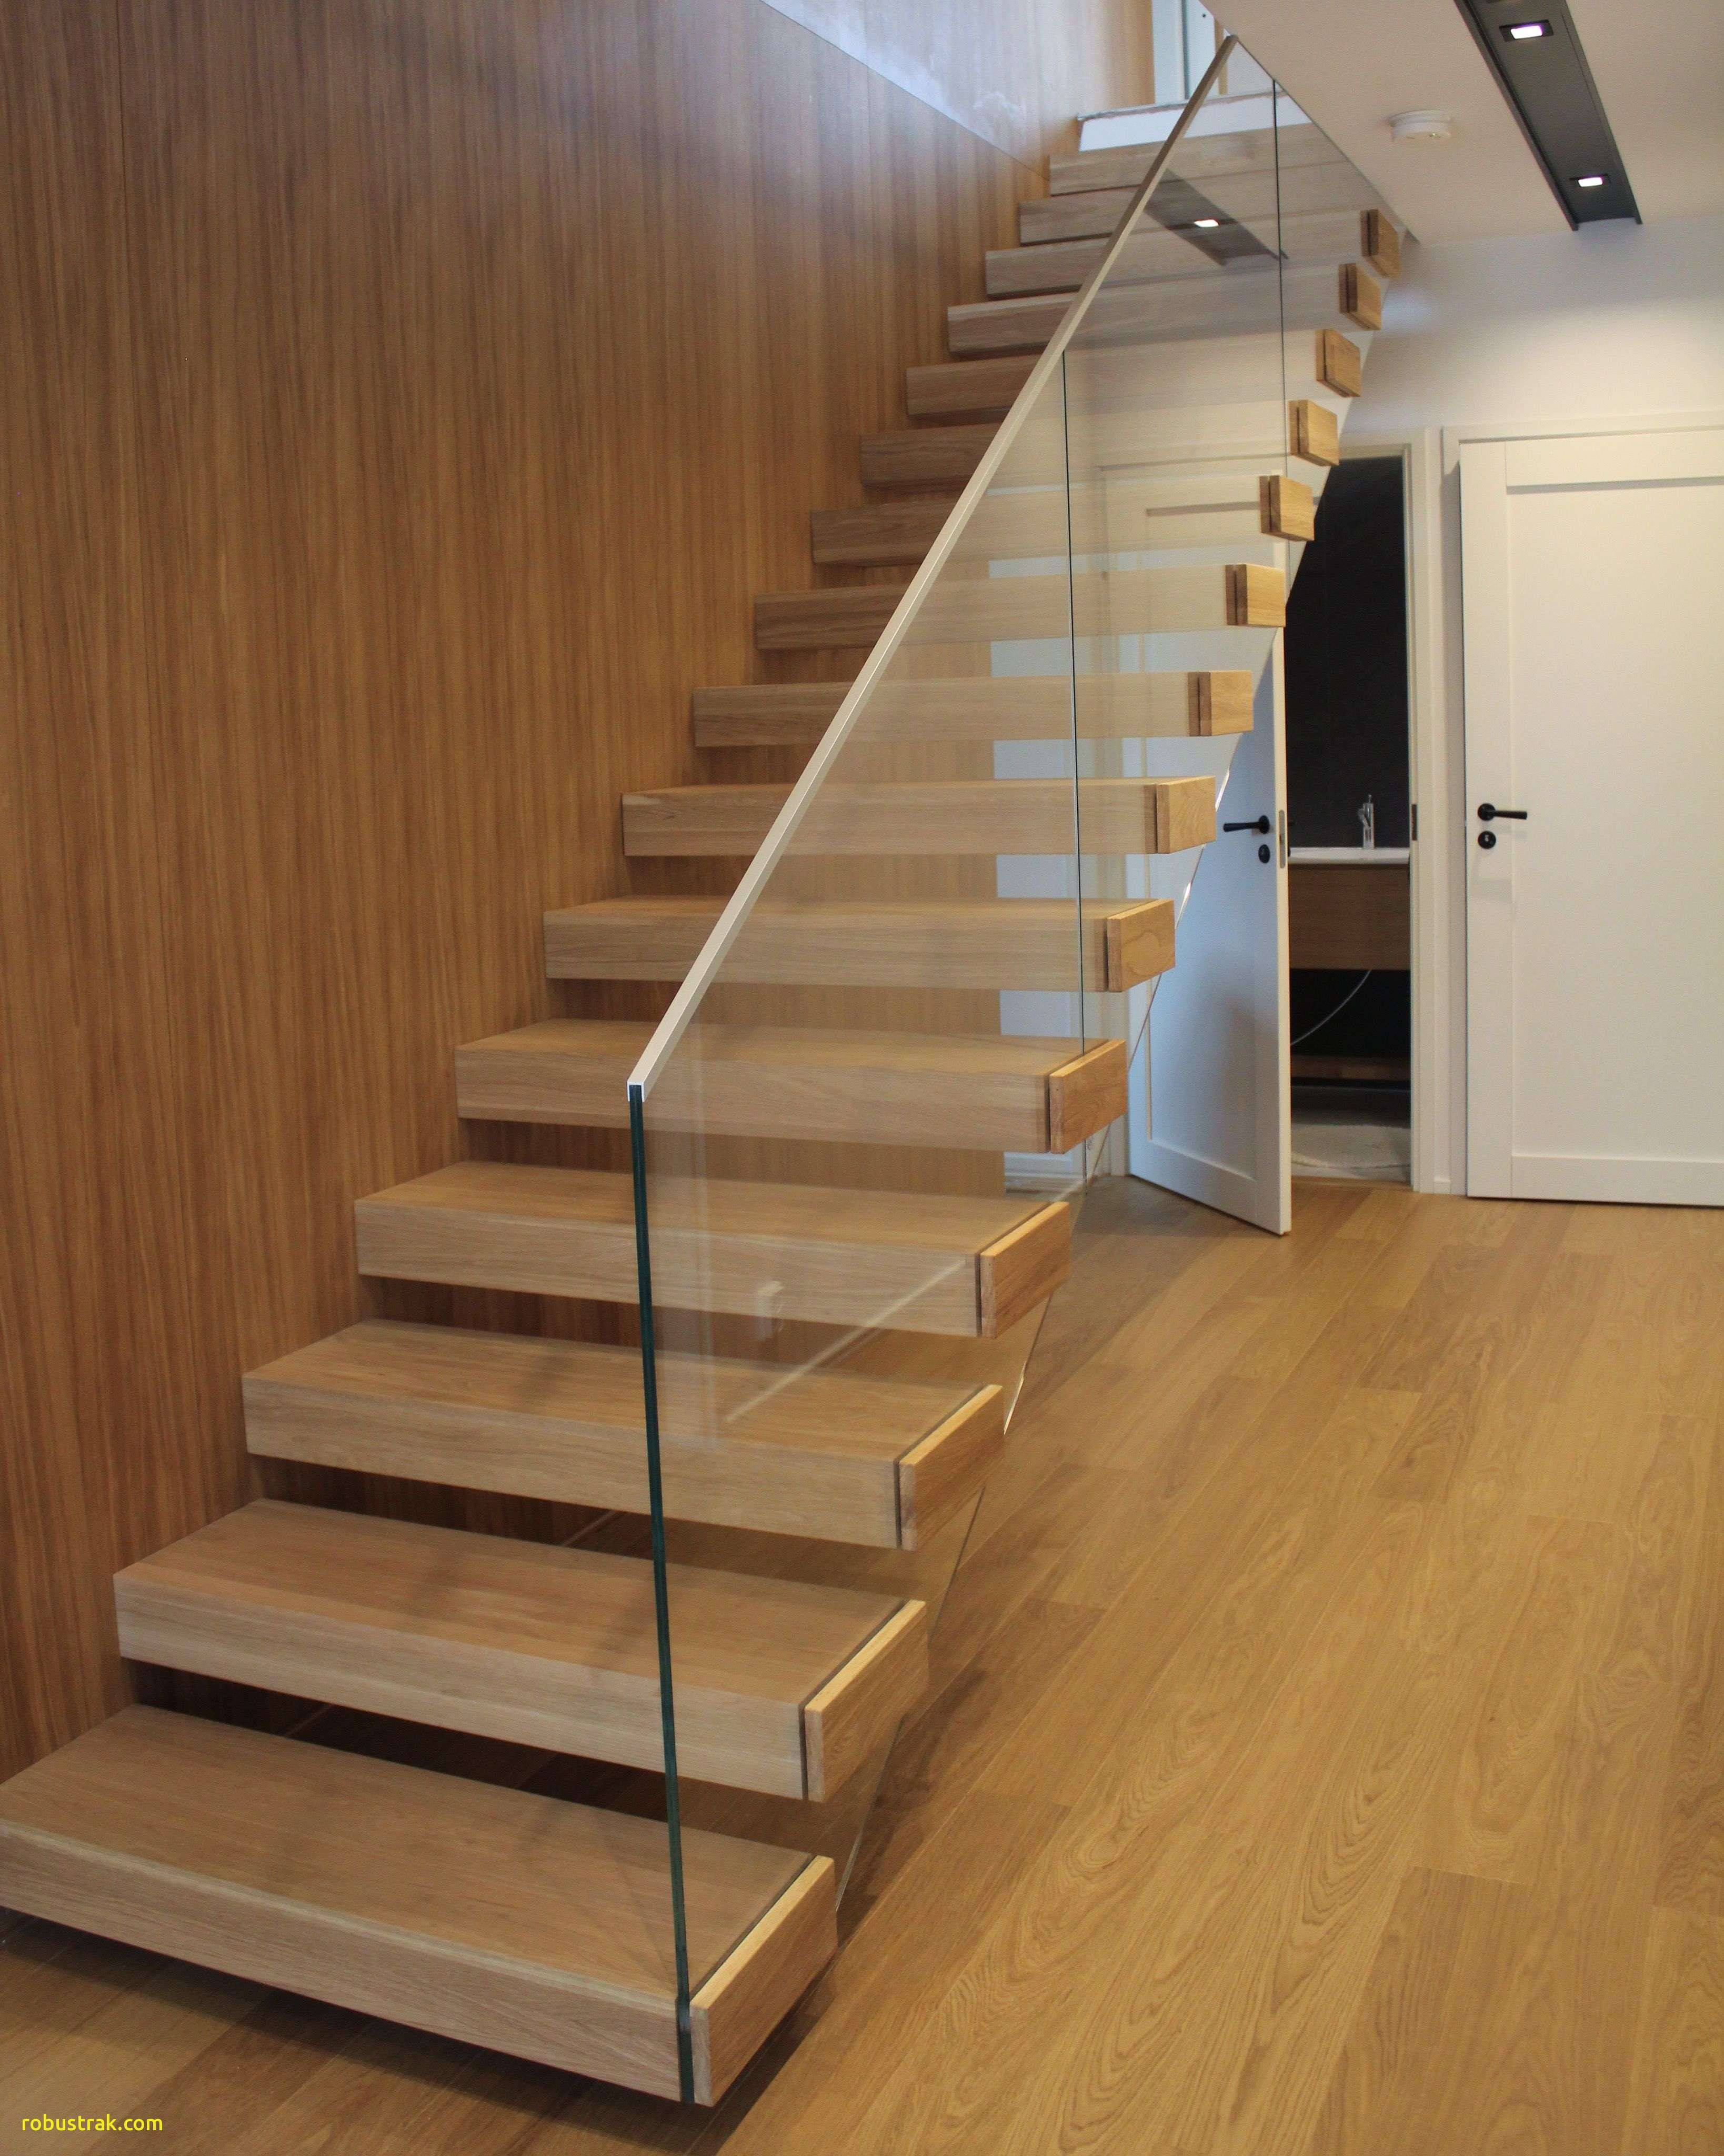 hardwood flooring on stairs pictures of floating steps elegant our grado leiju stairs from grado design villa inside floating steps elegant our grado leiju stairs from grado design villa of floating steps